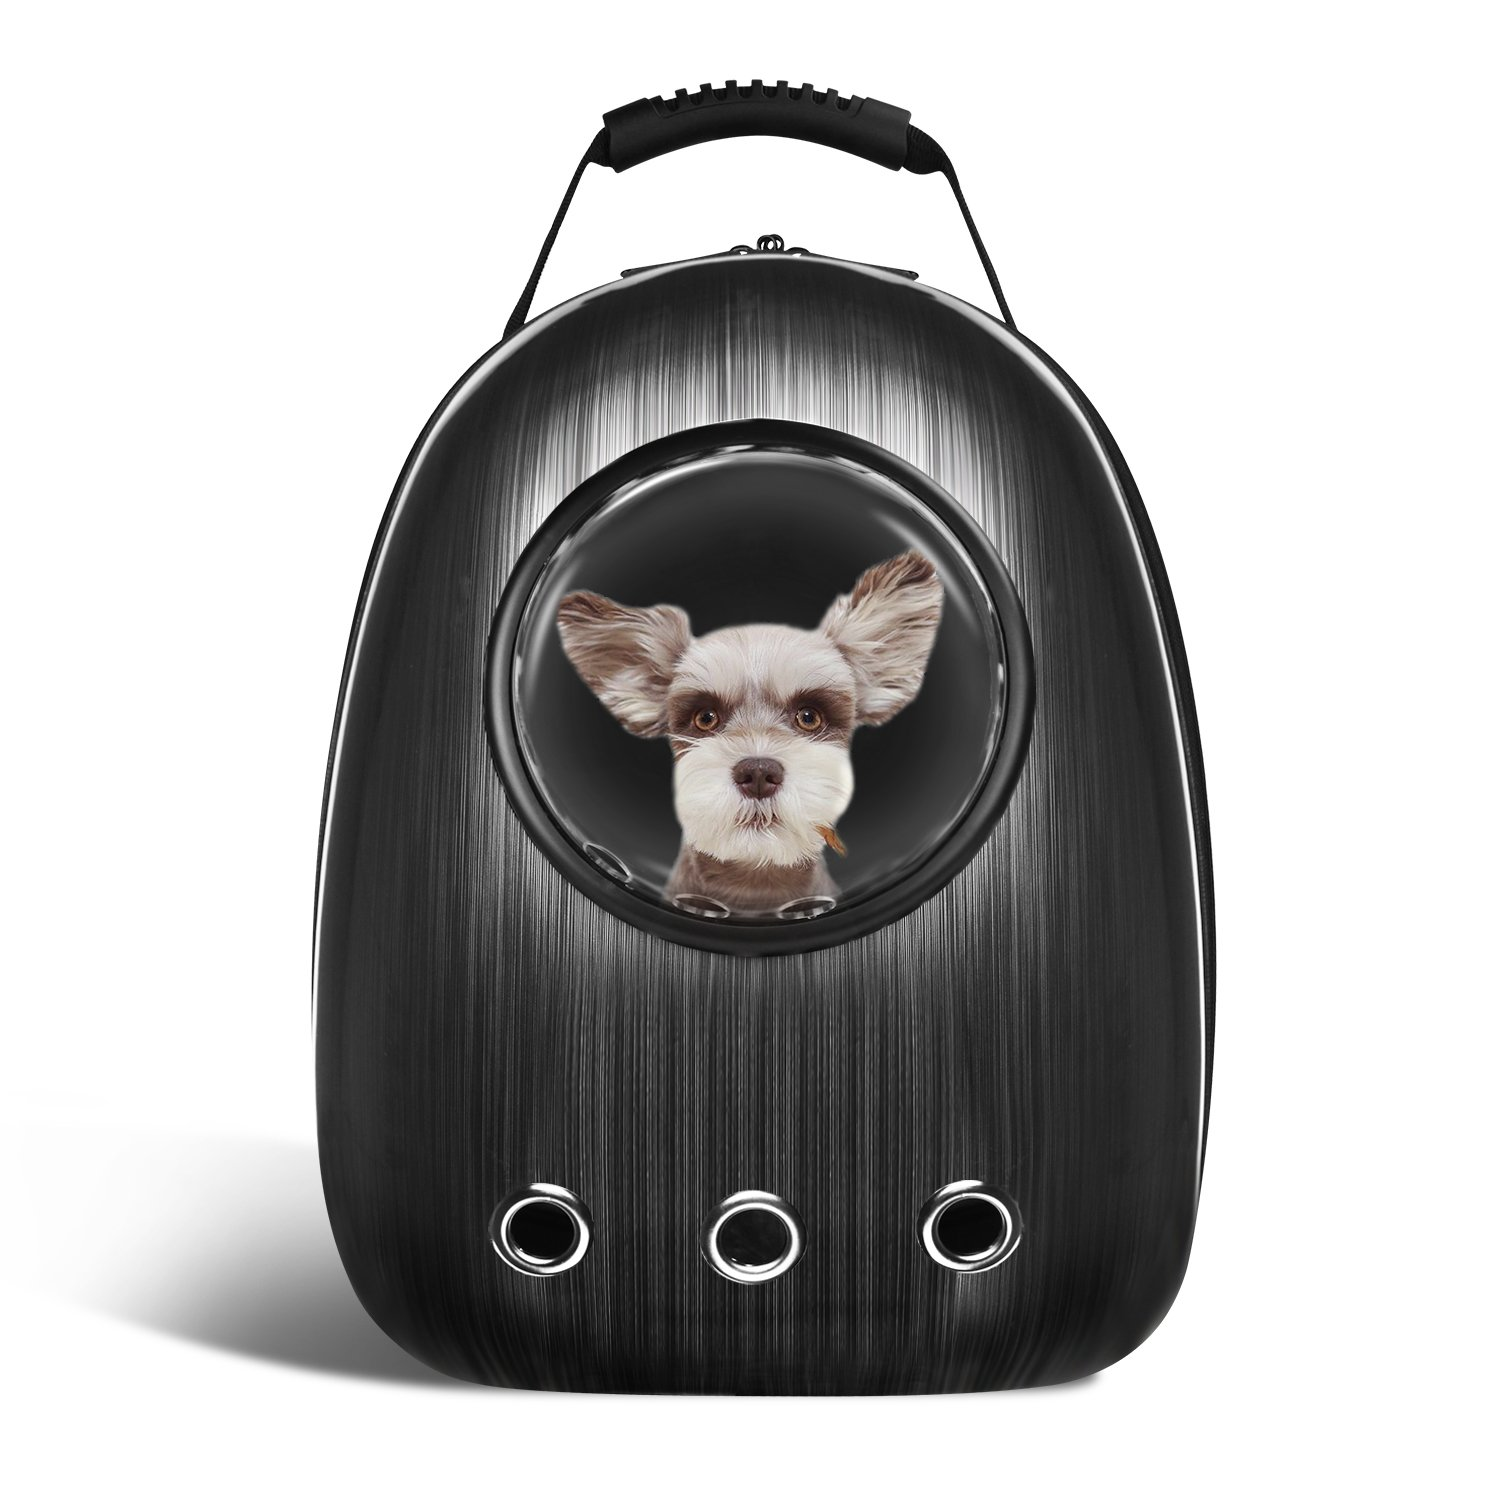 Anzone Pet Portable Carrier Space Capsule Backpack, Pet Bubble Traveler Knapsack Multiple Air Vents Waterproof Lightweight Handbag for Cats Small Dogs & Petite Animals-Black,30L